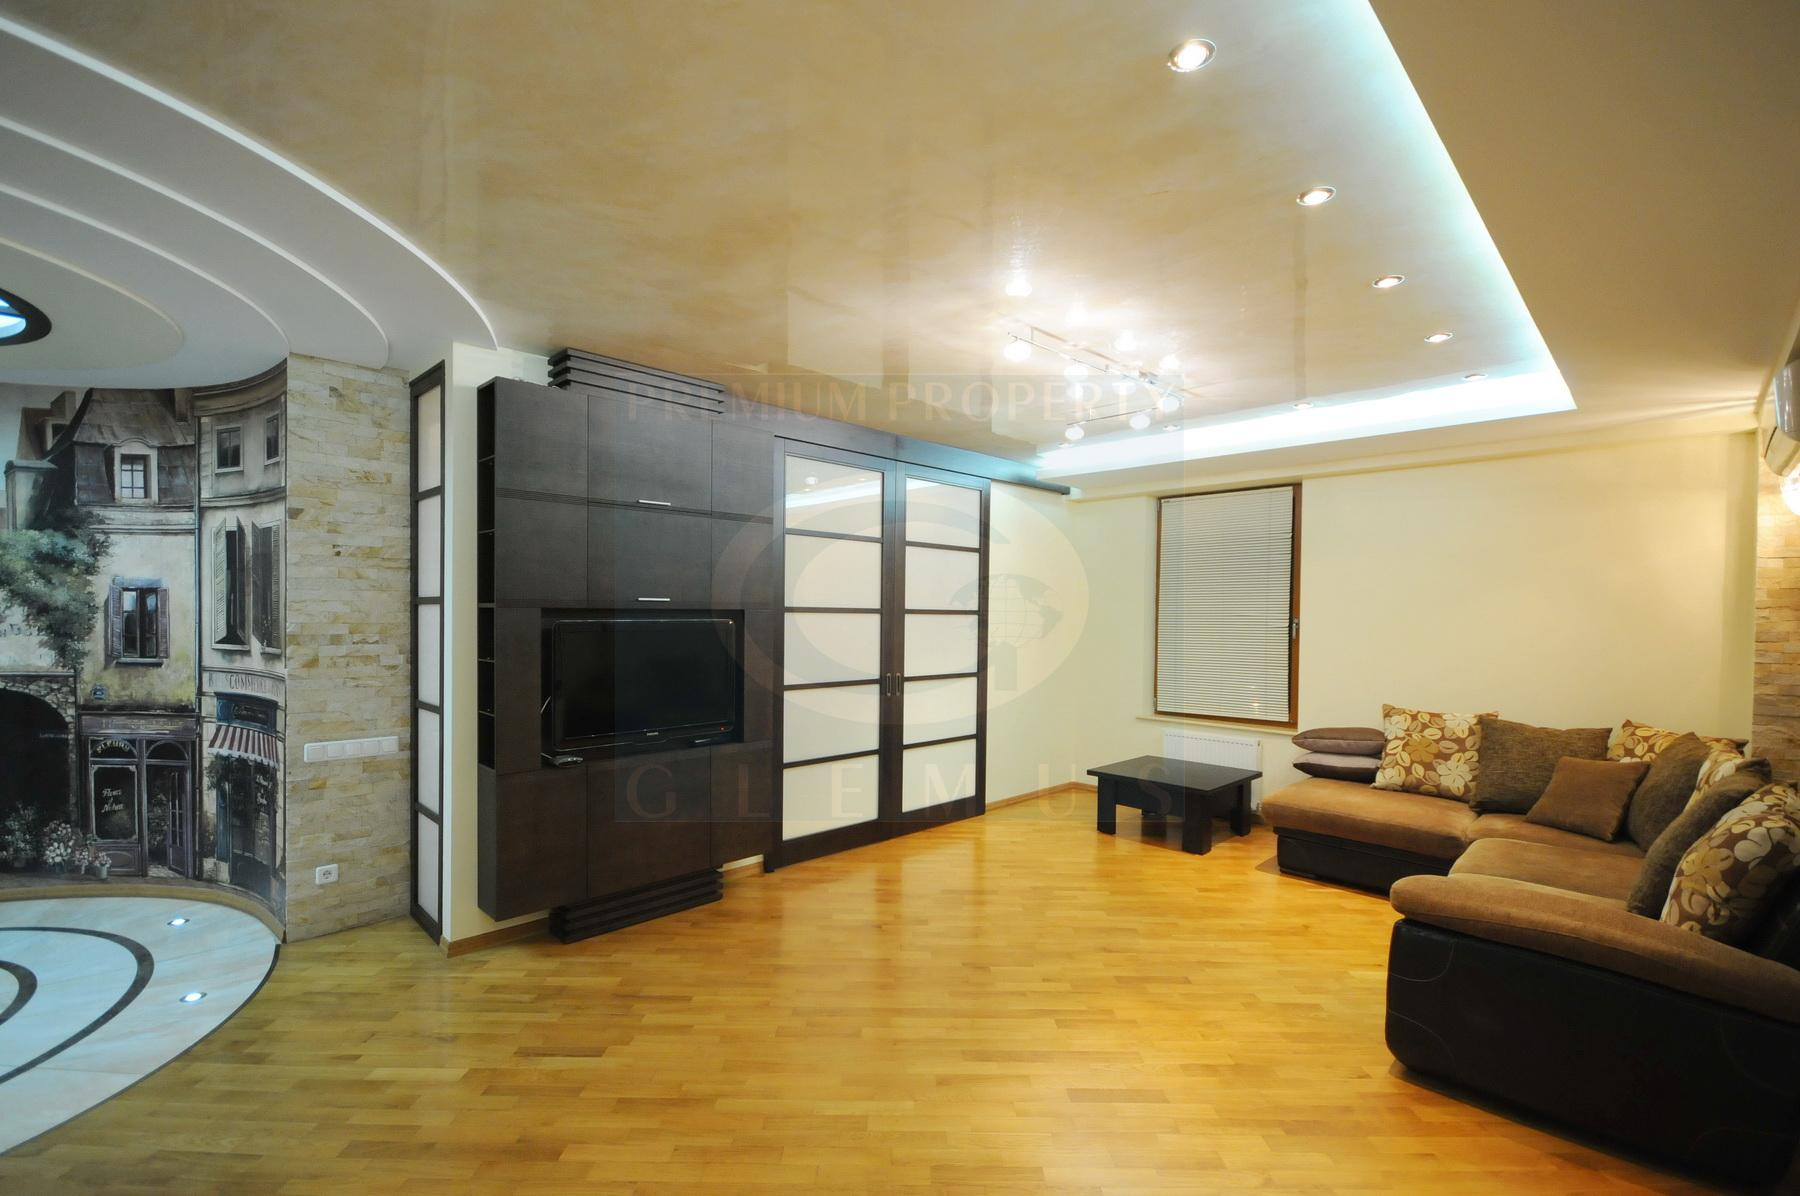 New, spaciouse apartment in a modern building